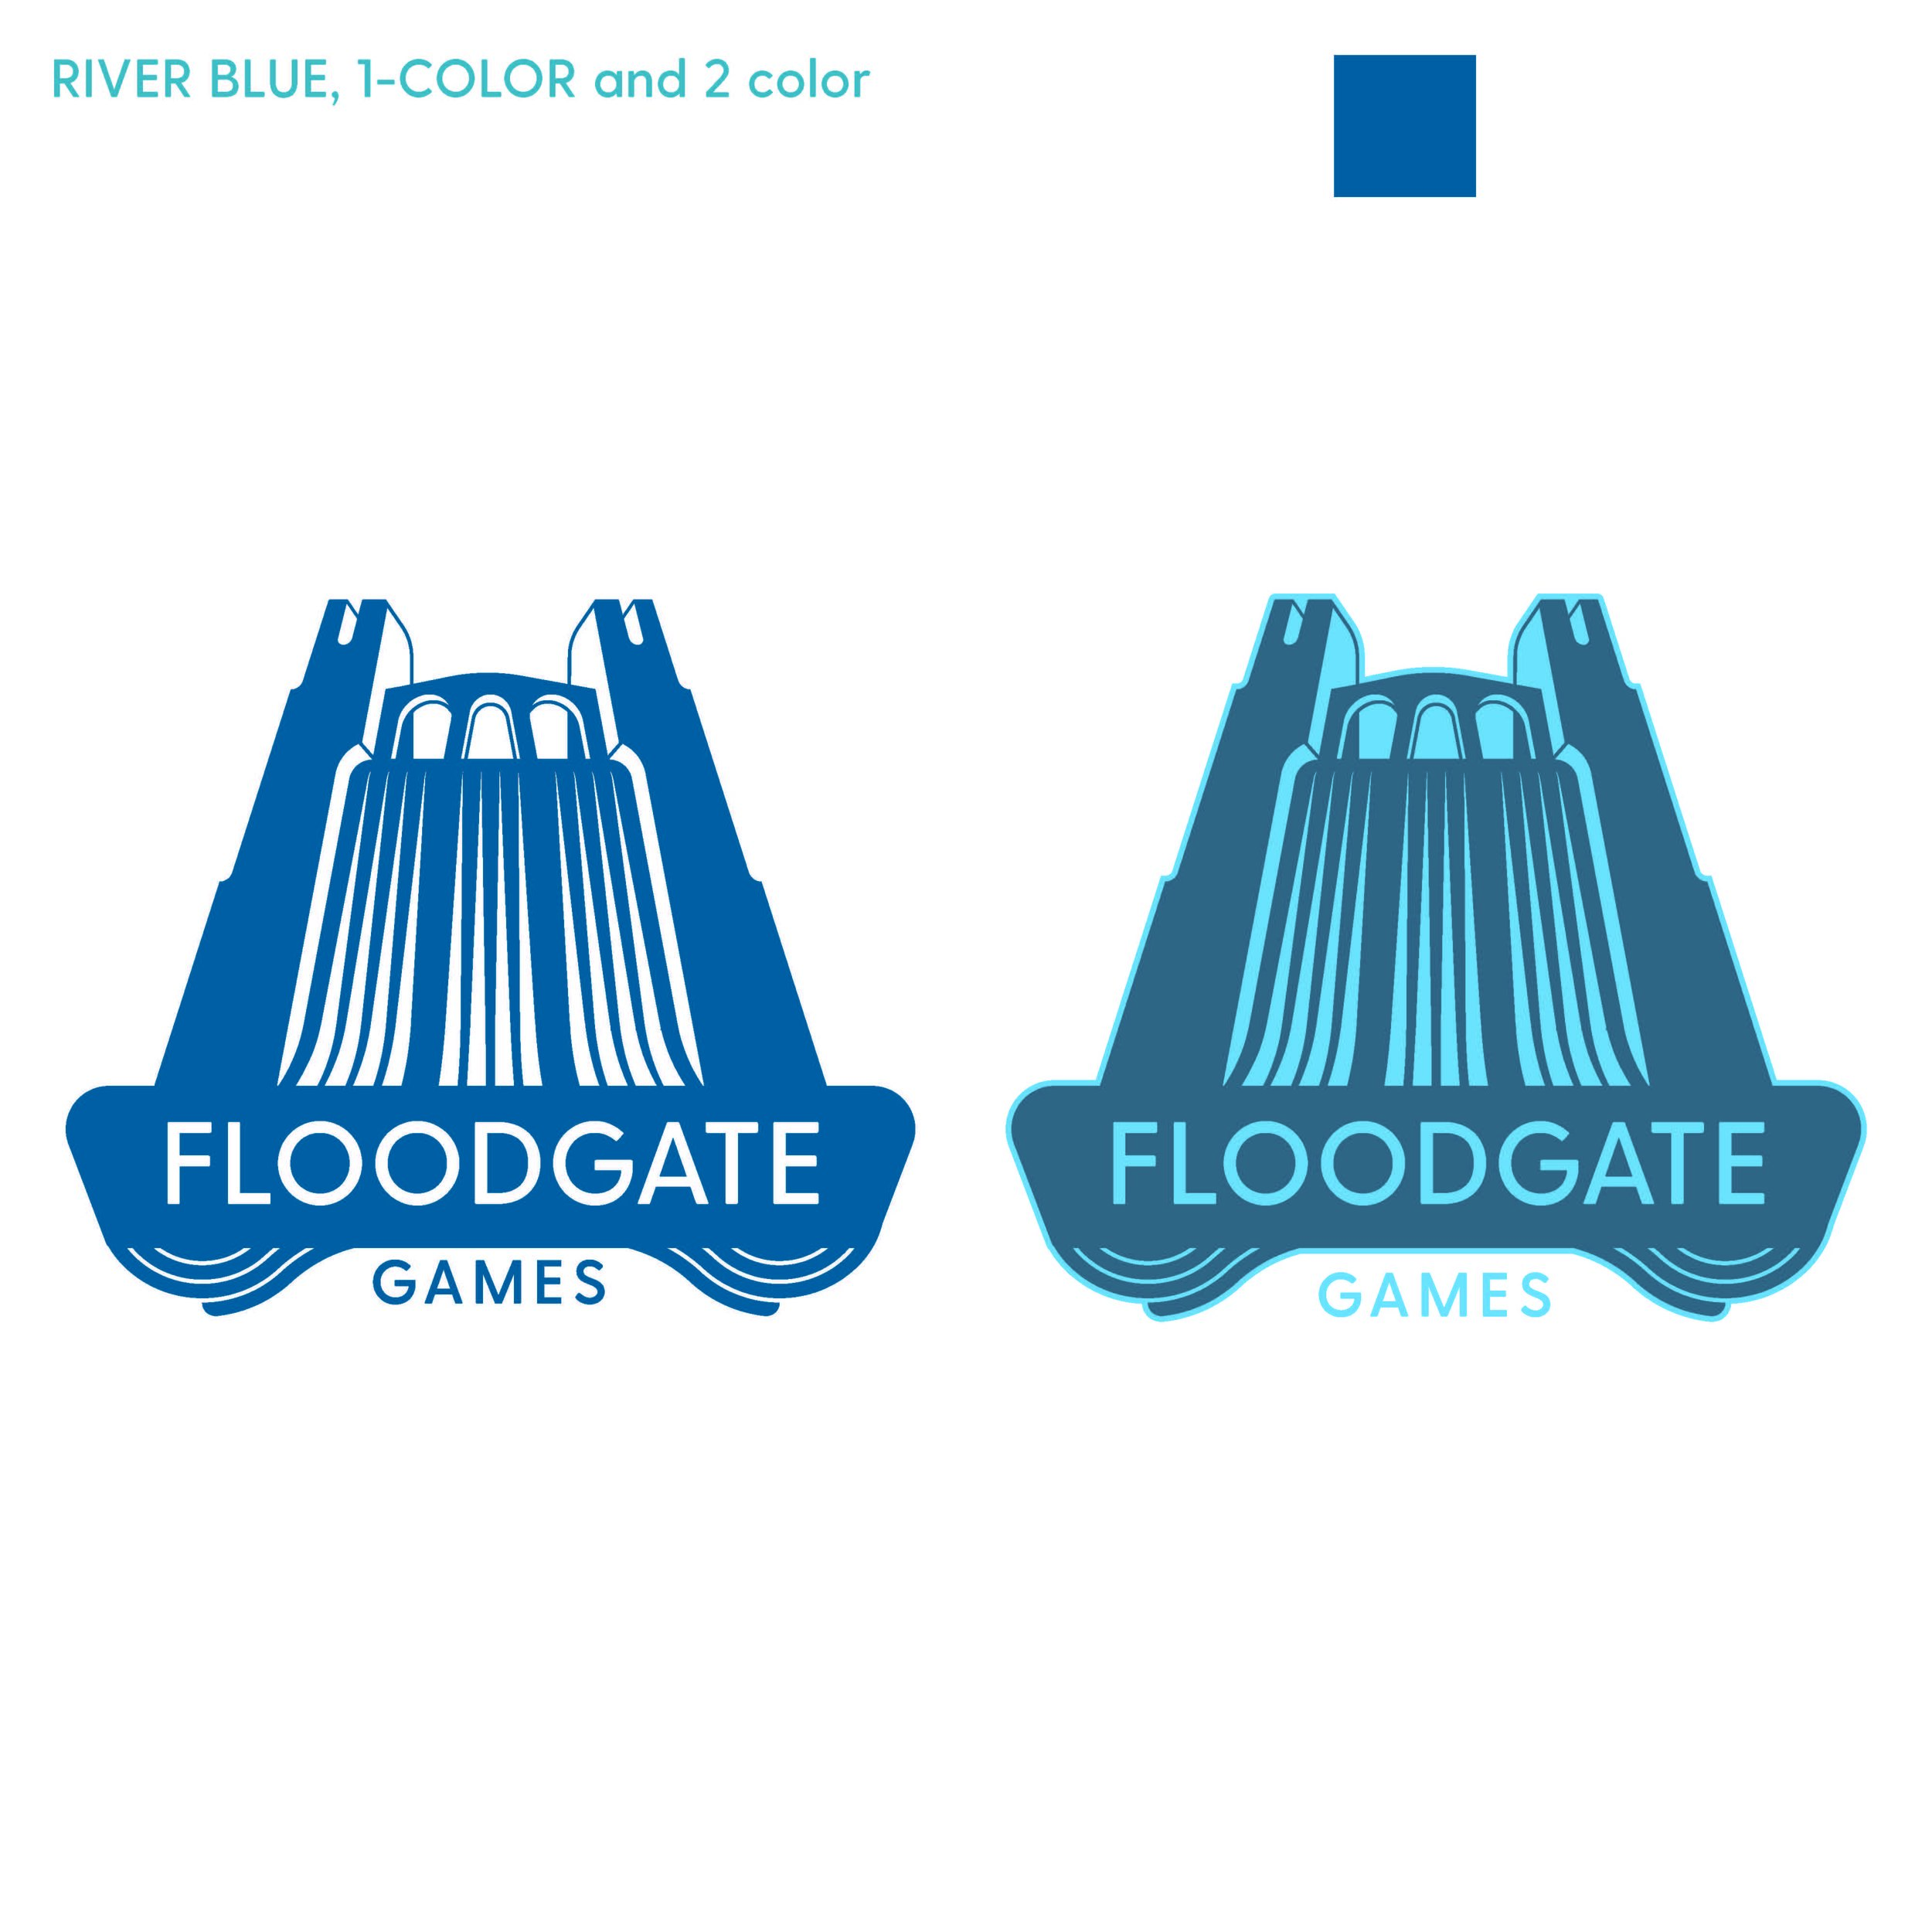 Floodgate_Logo2_V6_COLORS_Page_06.jpg